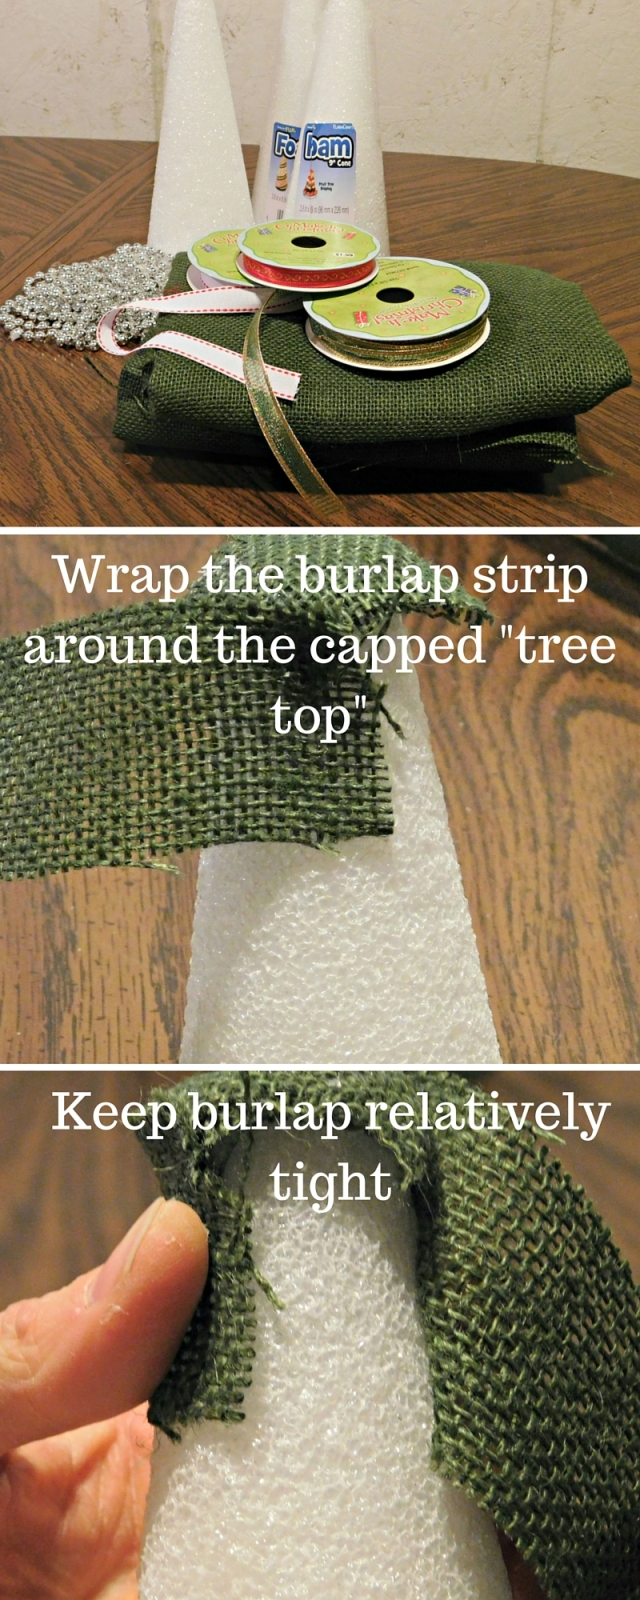 Wrap the burlap strip around the capped -tree top-